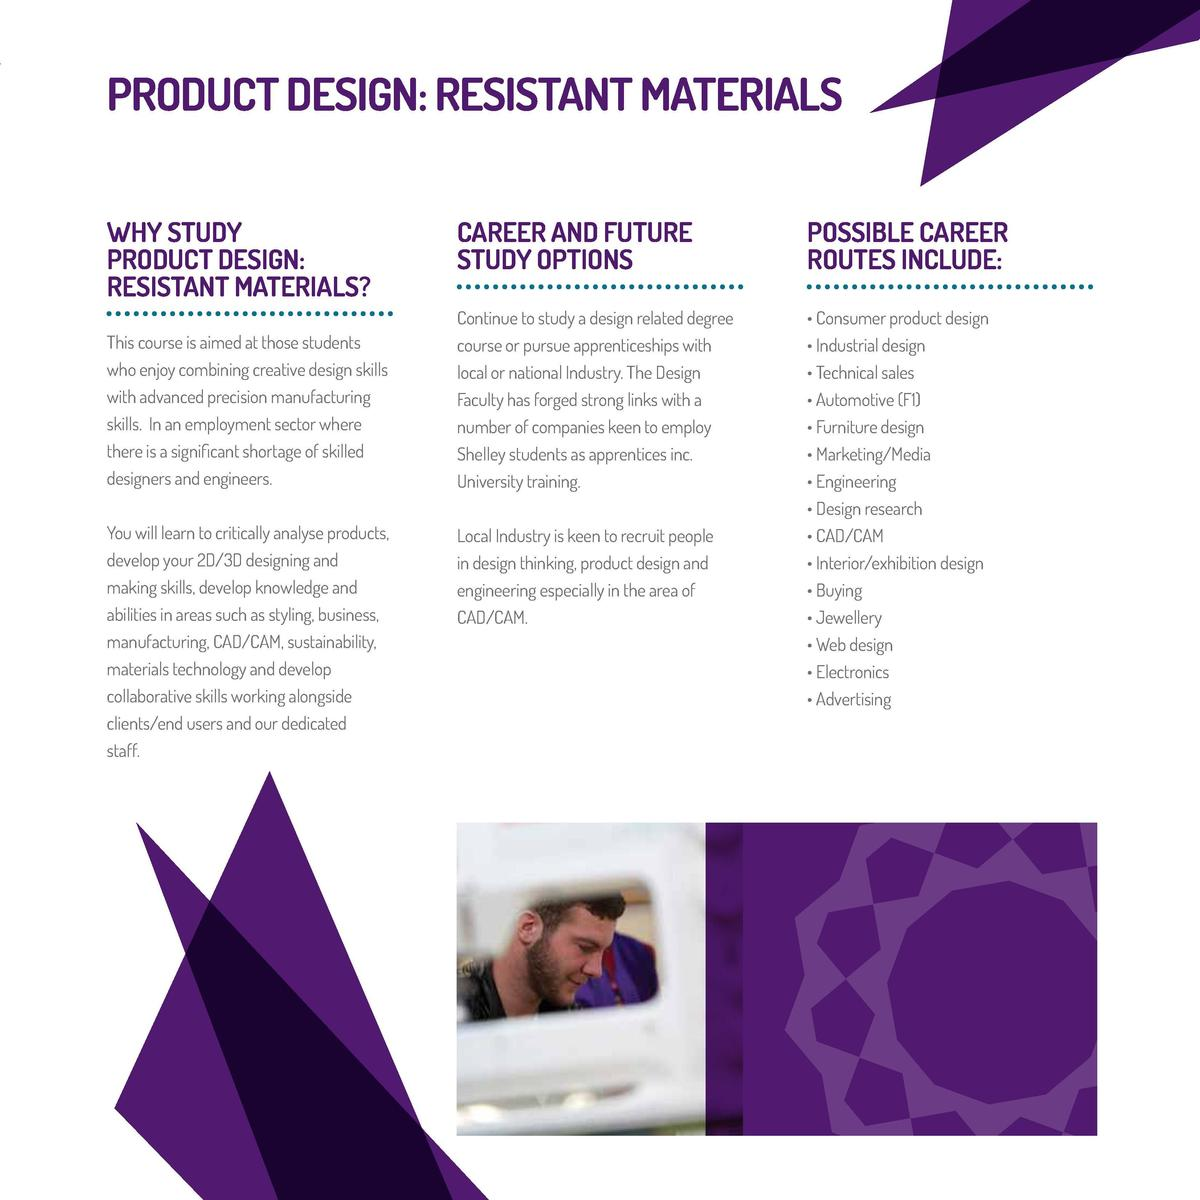 design and technology coursework resistant materials Graphic products (aqa) the graphic products course follows a similar style to the resistant materials course with 60% based on a coursework project and a 40%, design-based exam.